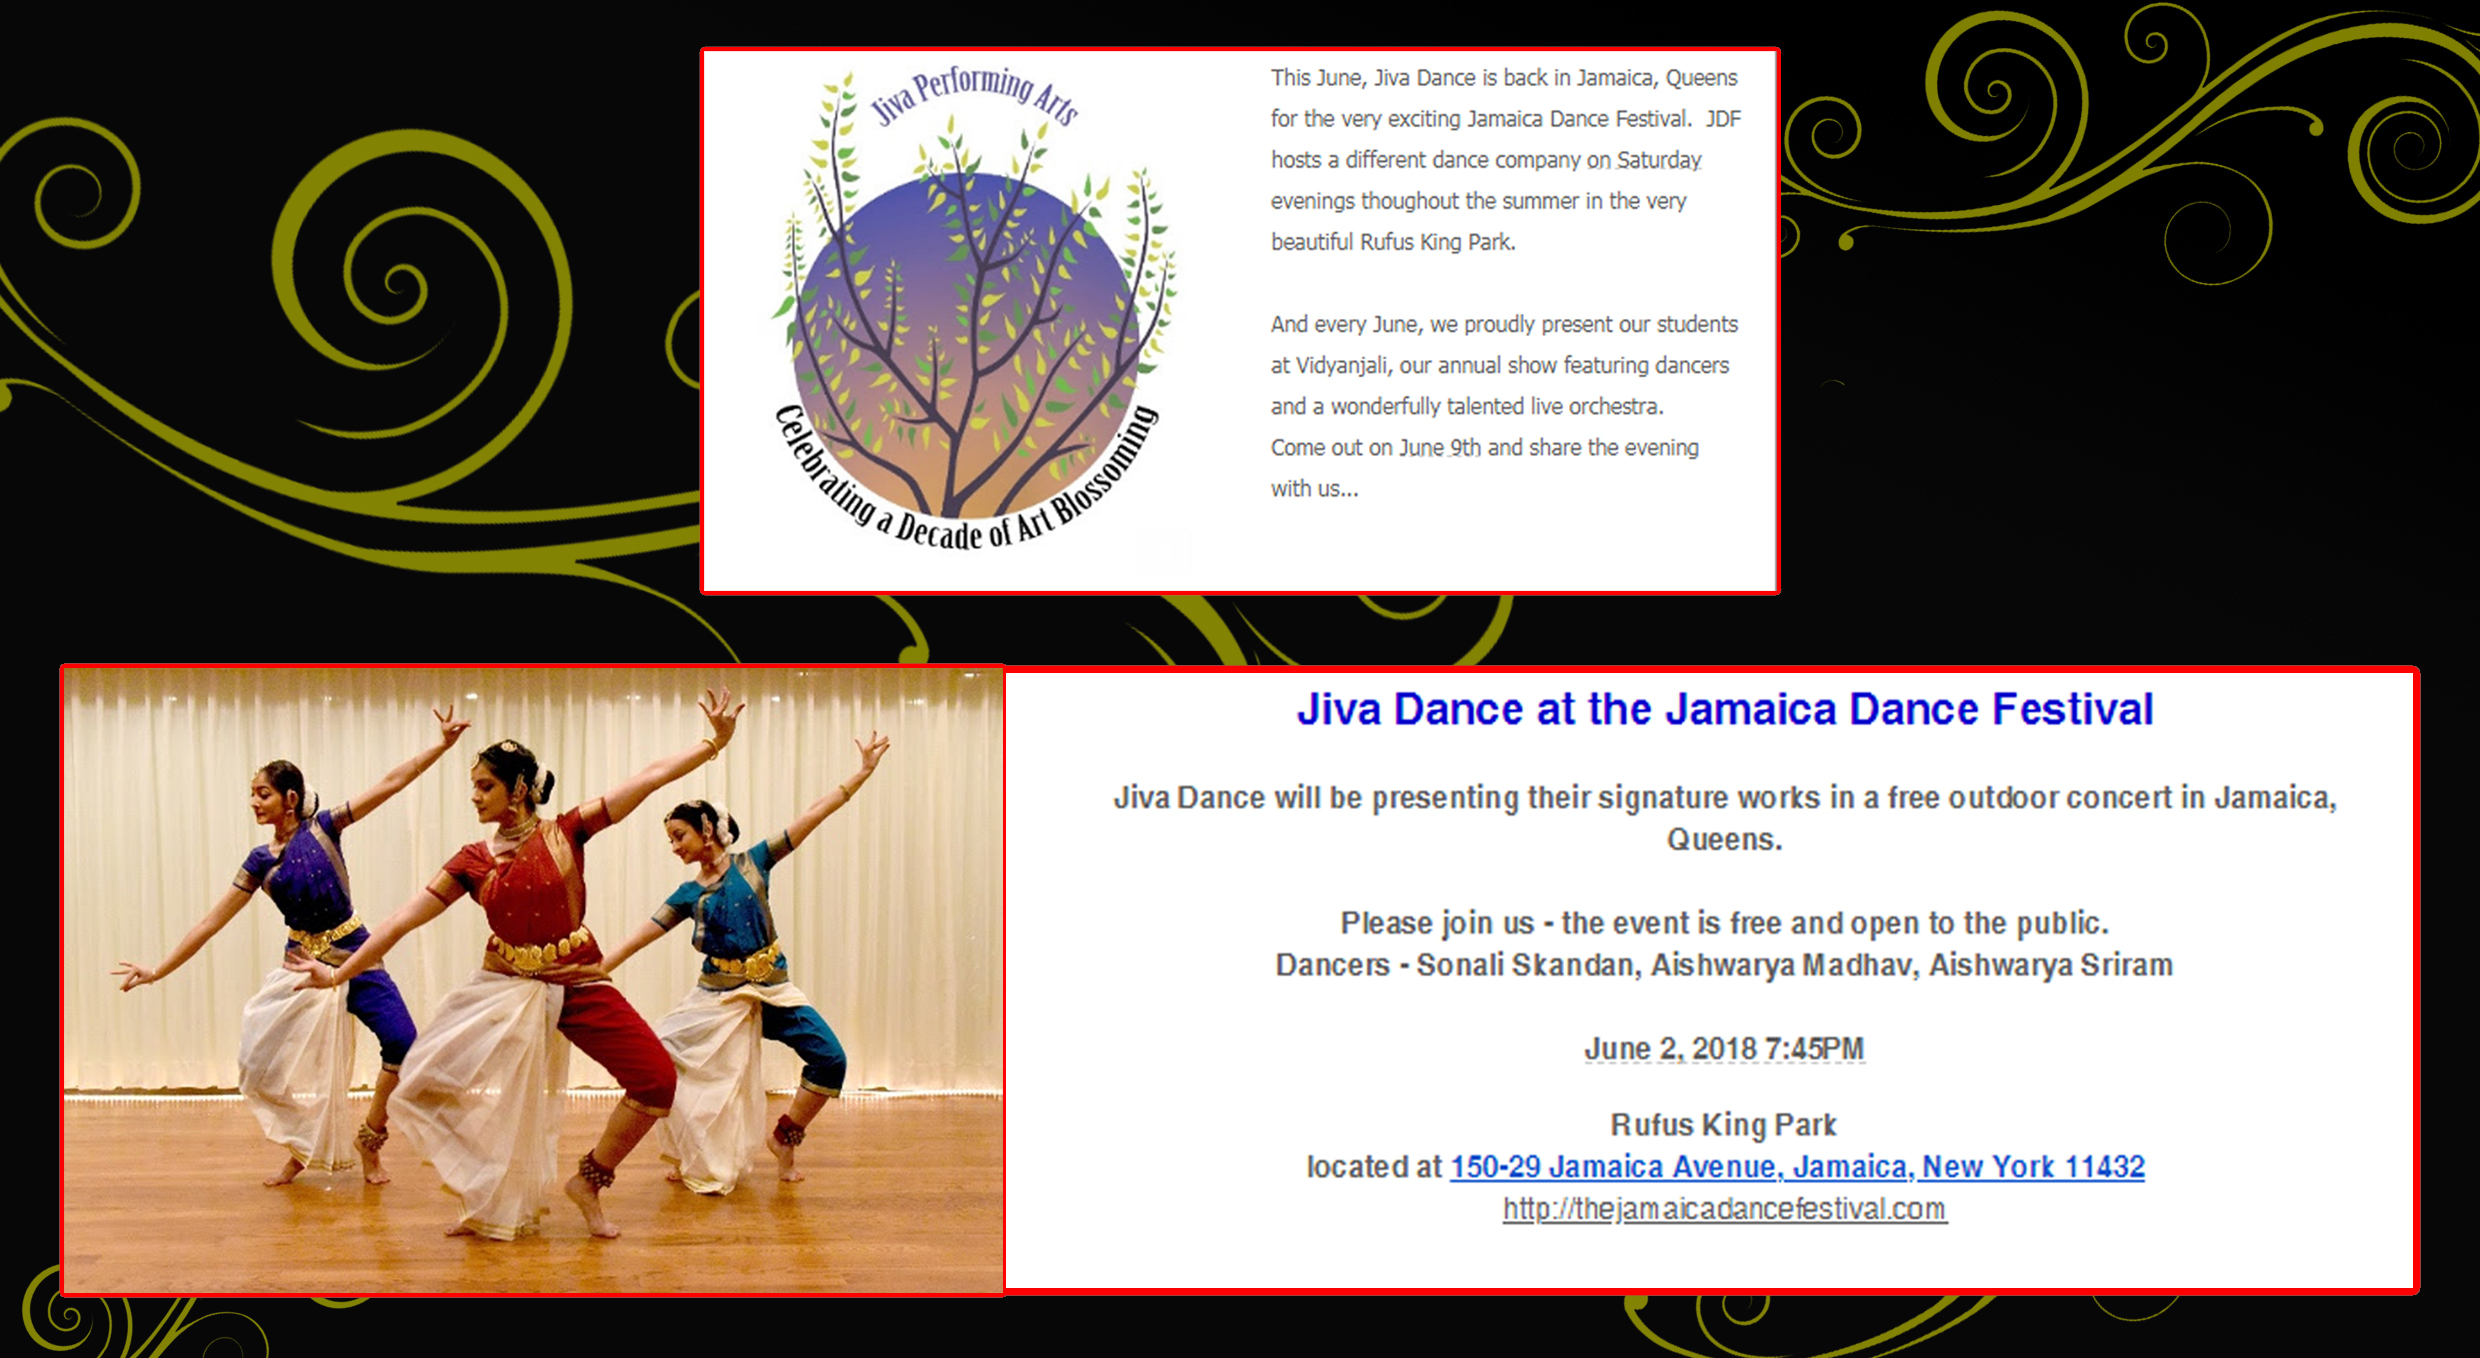 Jiva Dance at the Jamaica Dance Festival